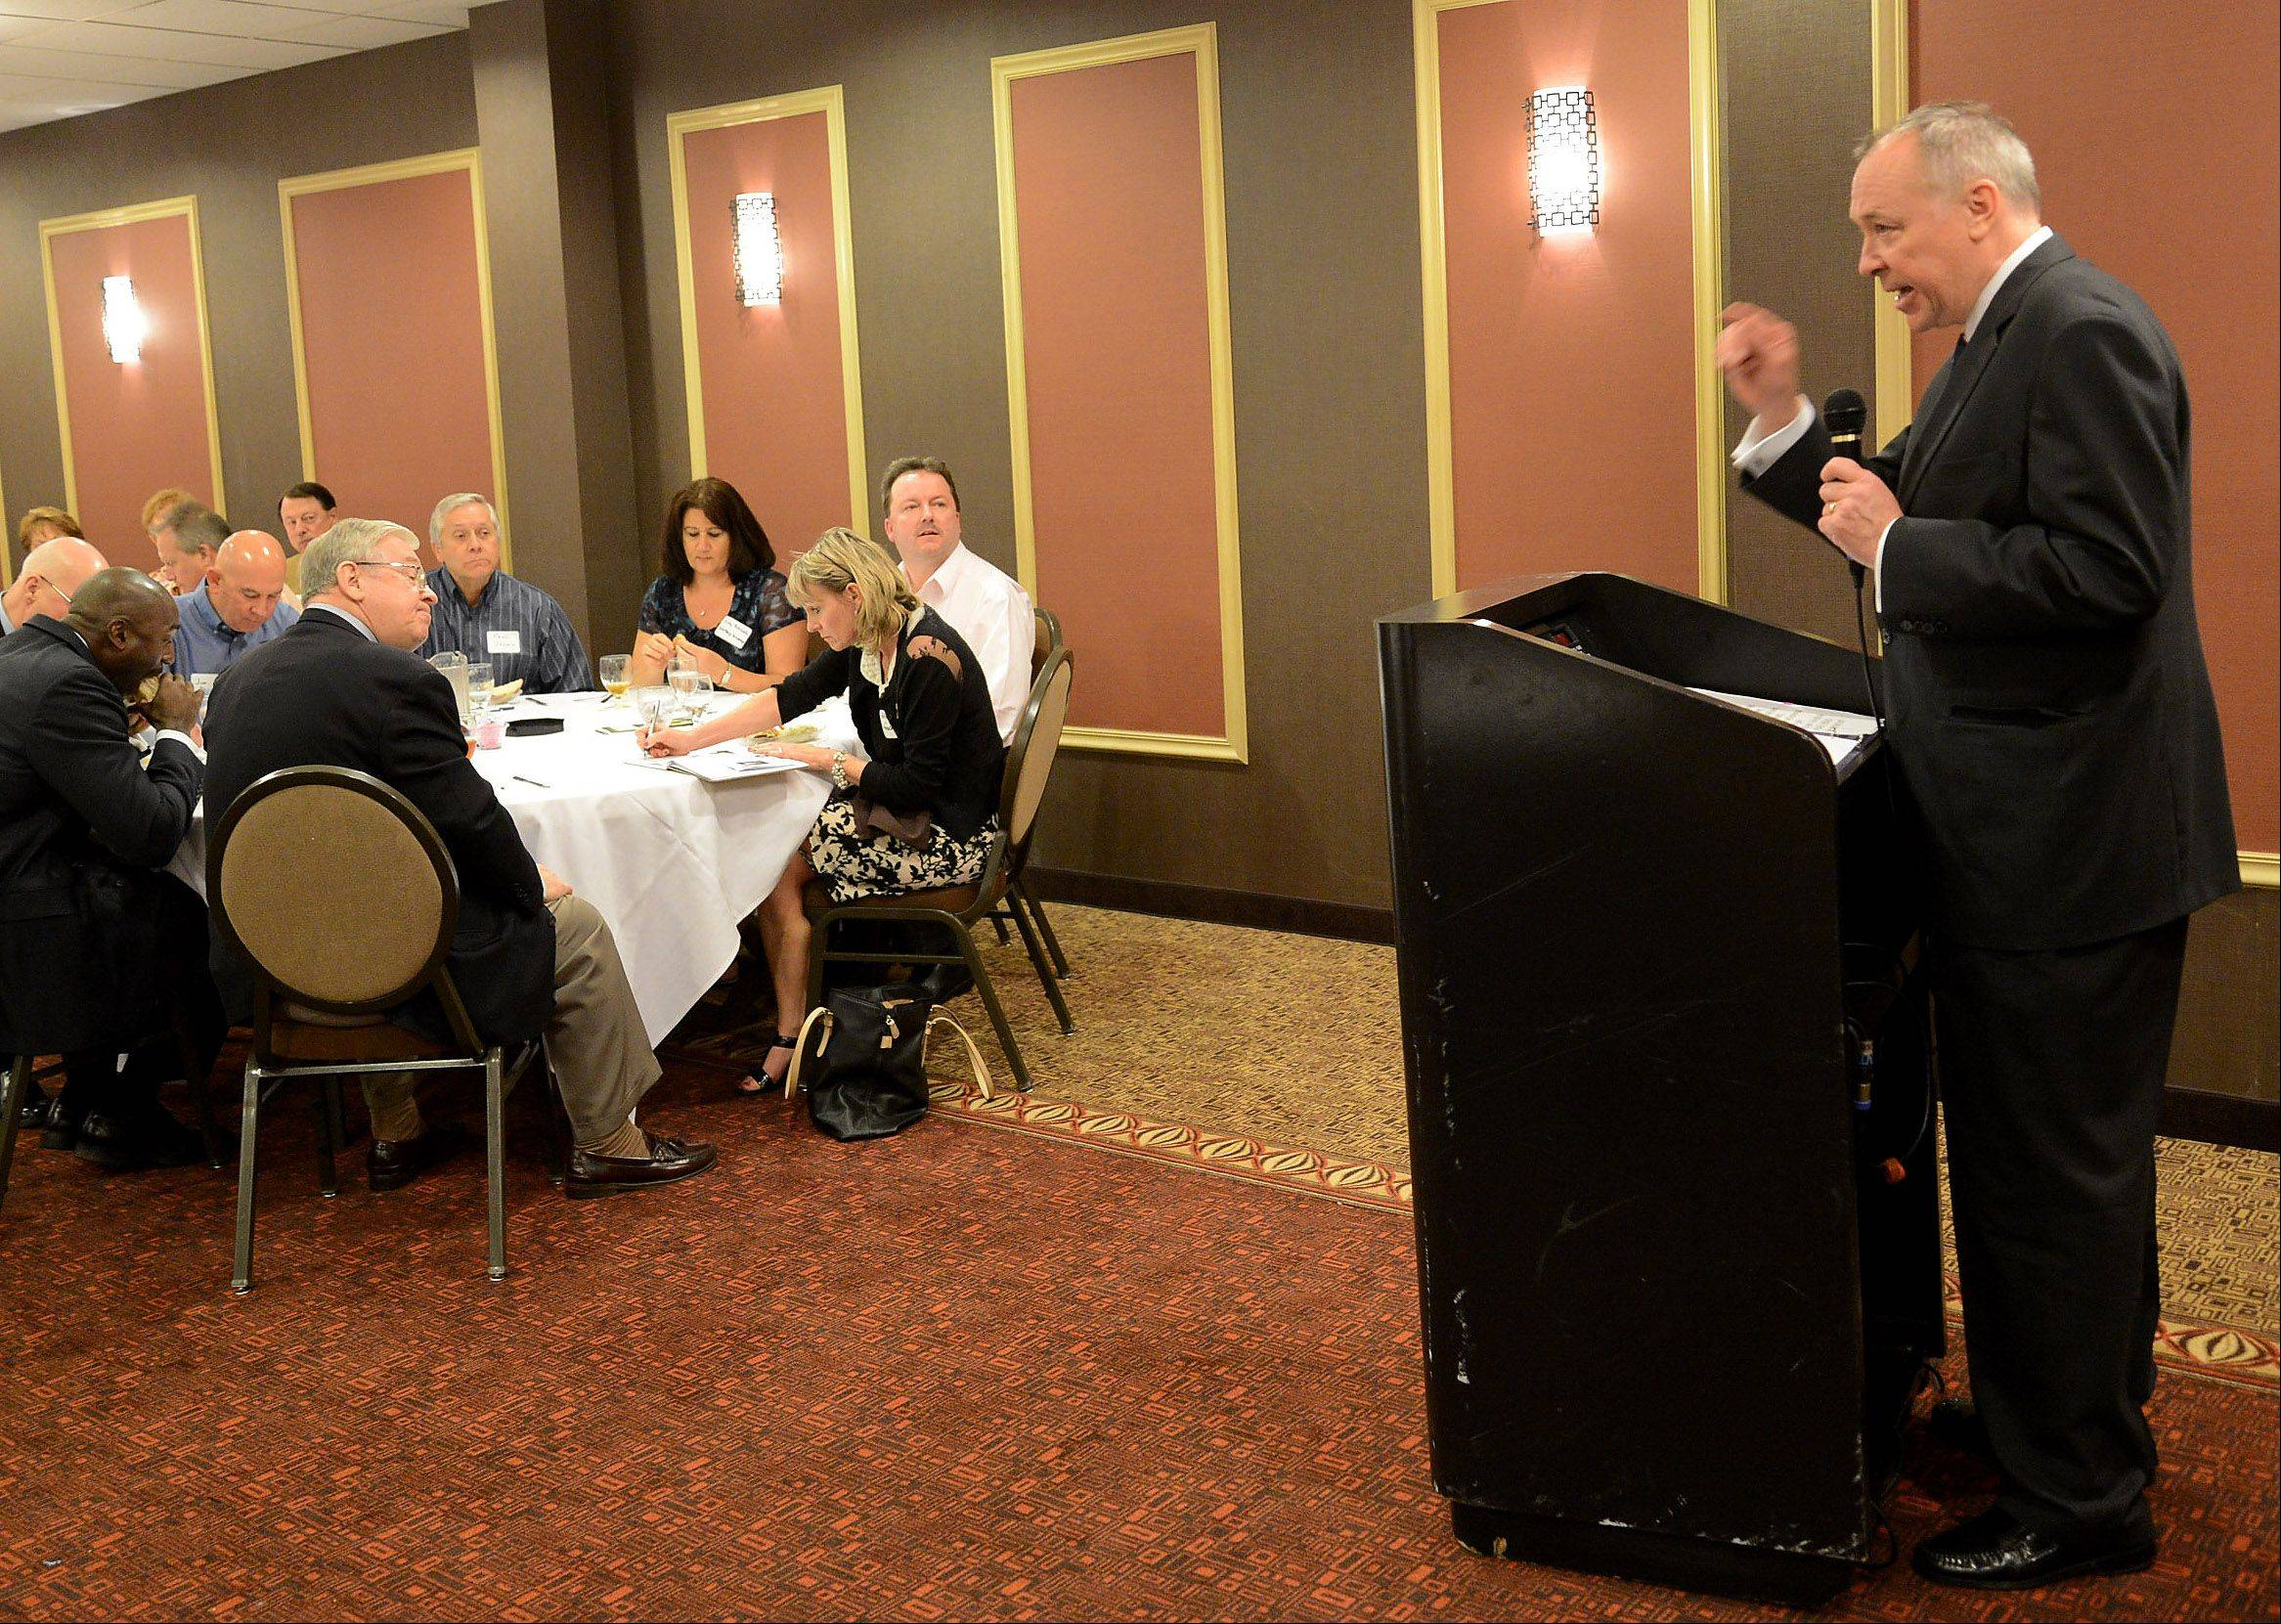 Cook County Board Commissioner Gregg Goslin speaks at a multi-chamber luncheon in Palatine on Tuesday.